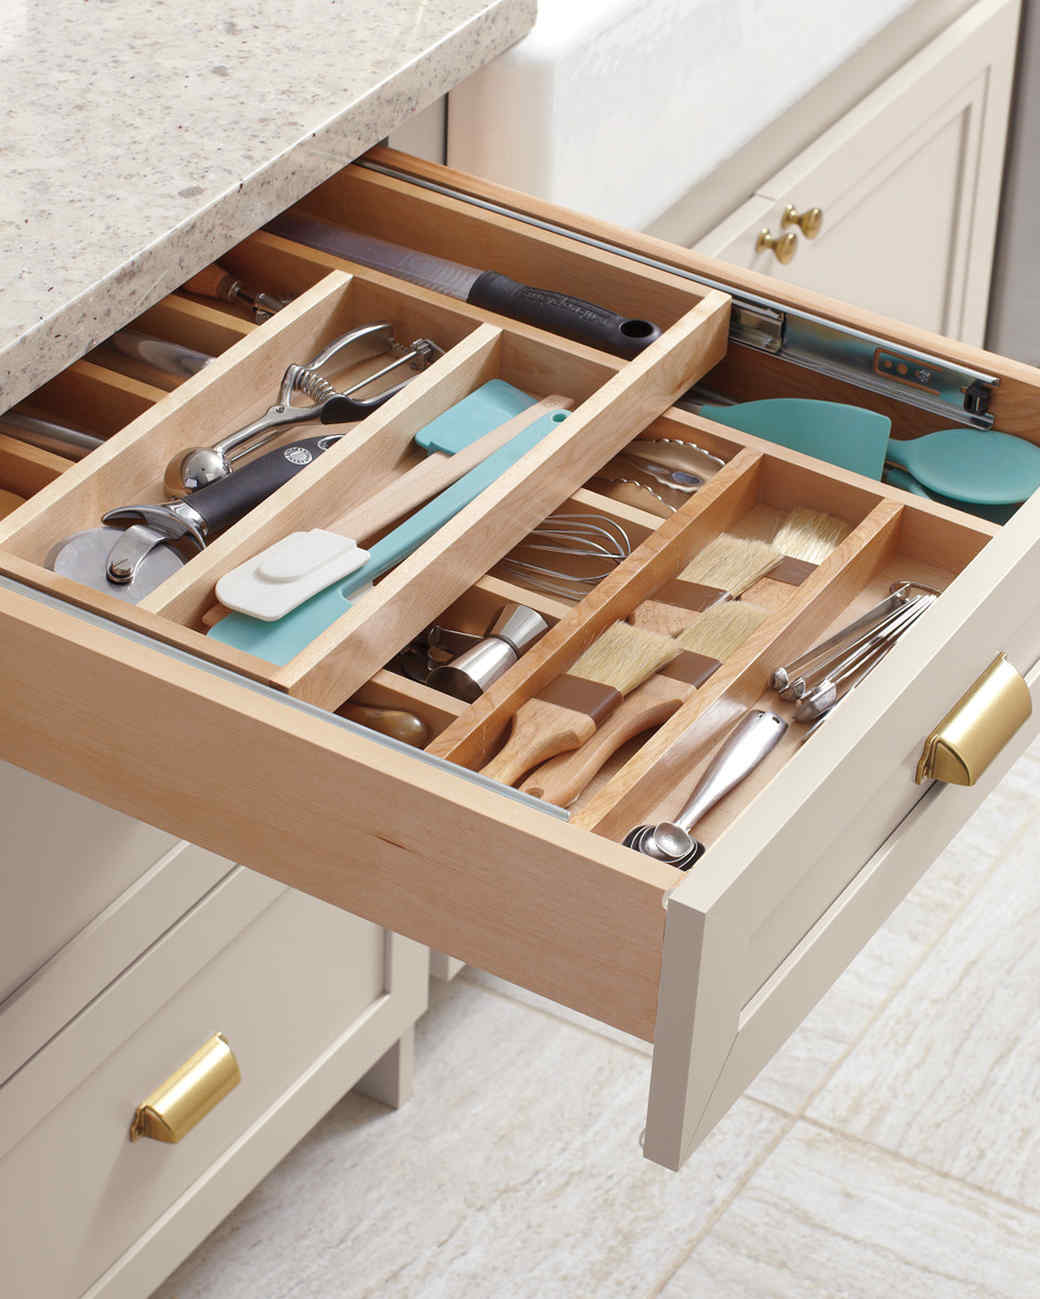 Kitchen Cabinet Drawer With Top: Behind The Door: 17 Hidden Ways To Organize Your Kitchen